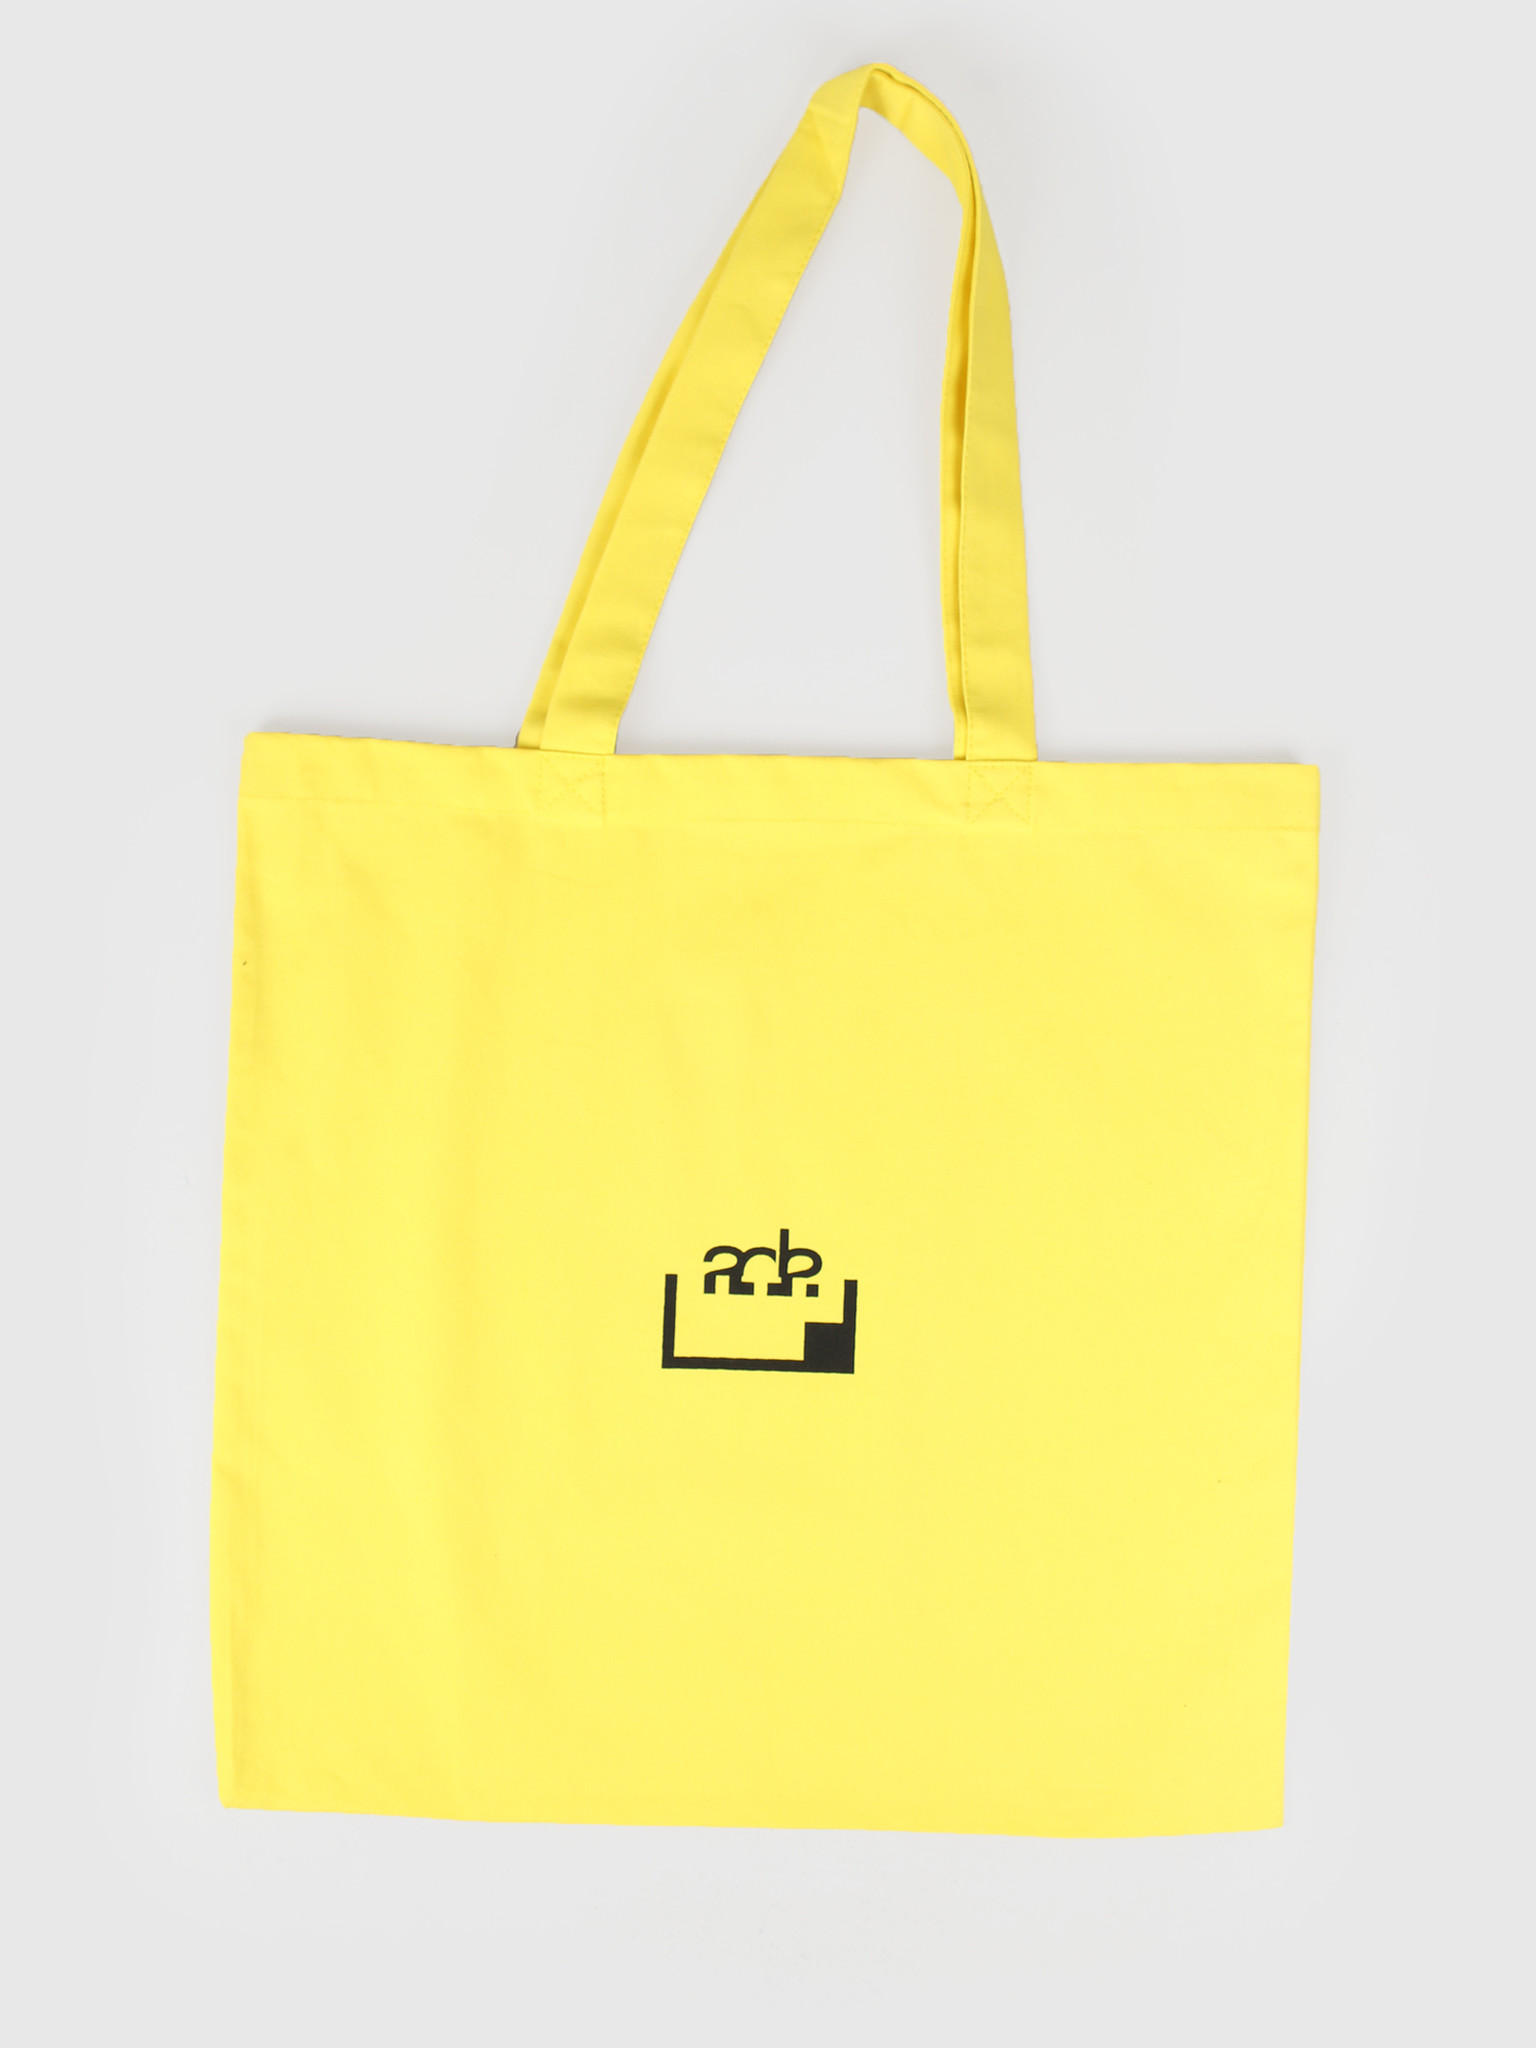 FRESHCOTTON x ADE FRESHCOTTON x ADE Printed Tote Bag Yellow